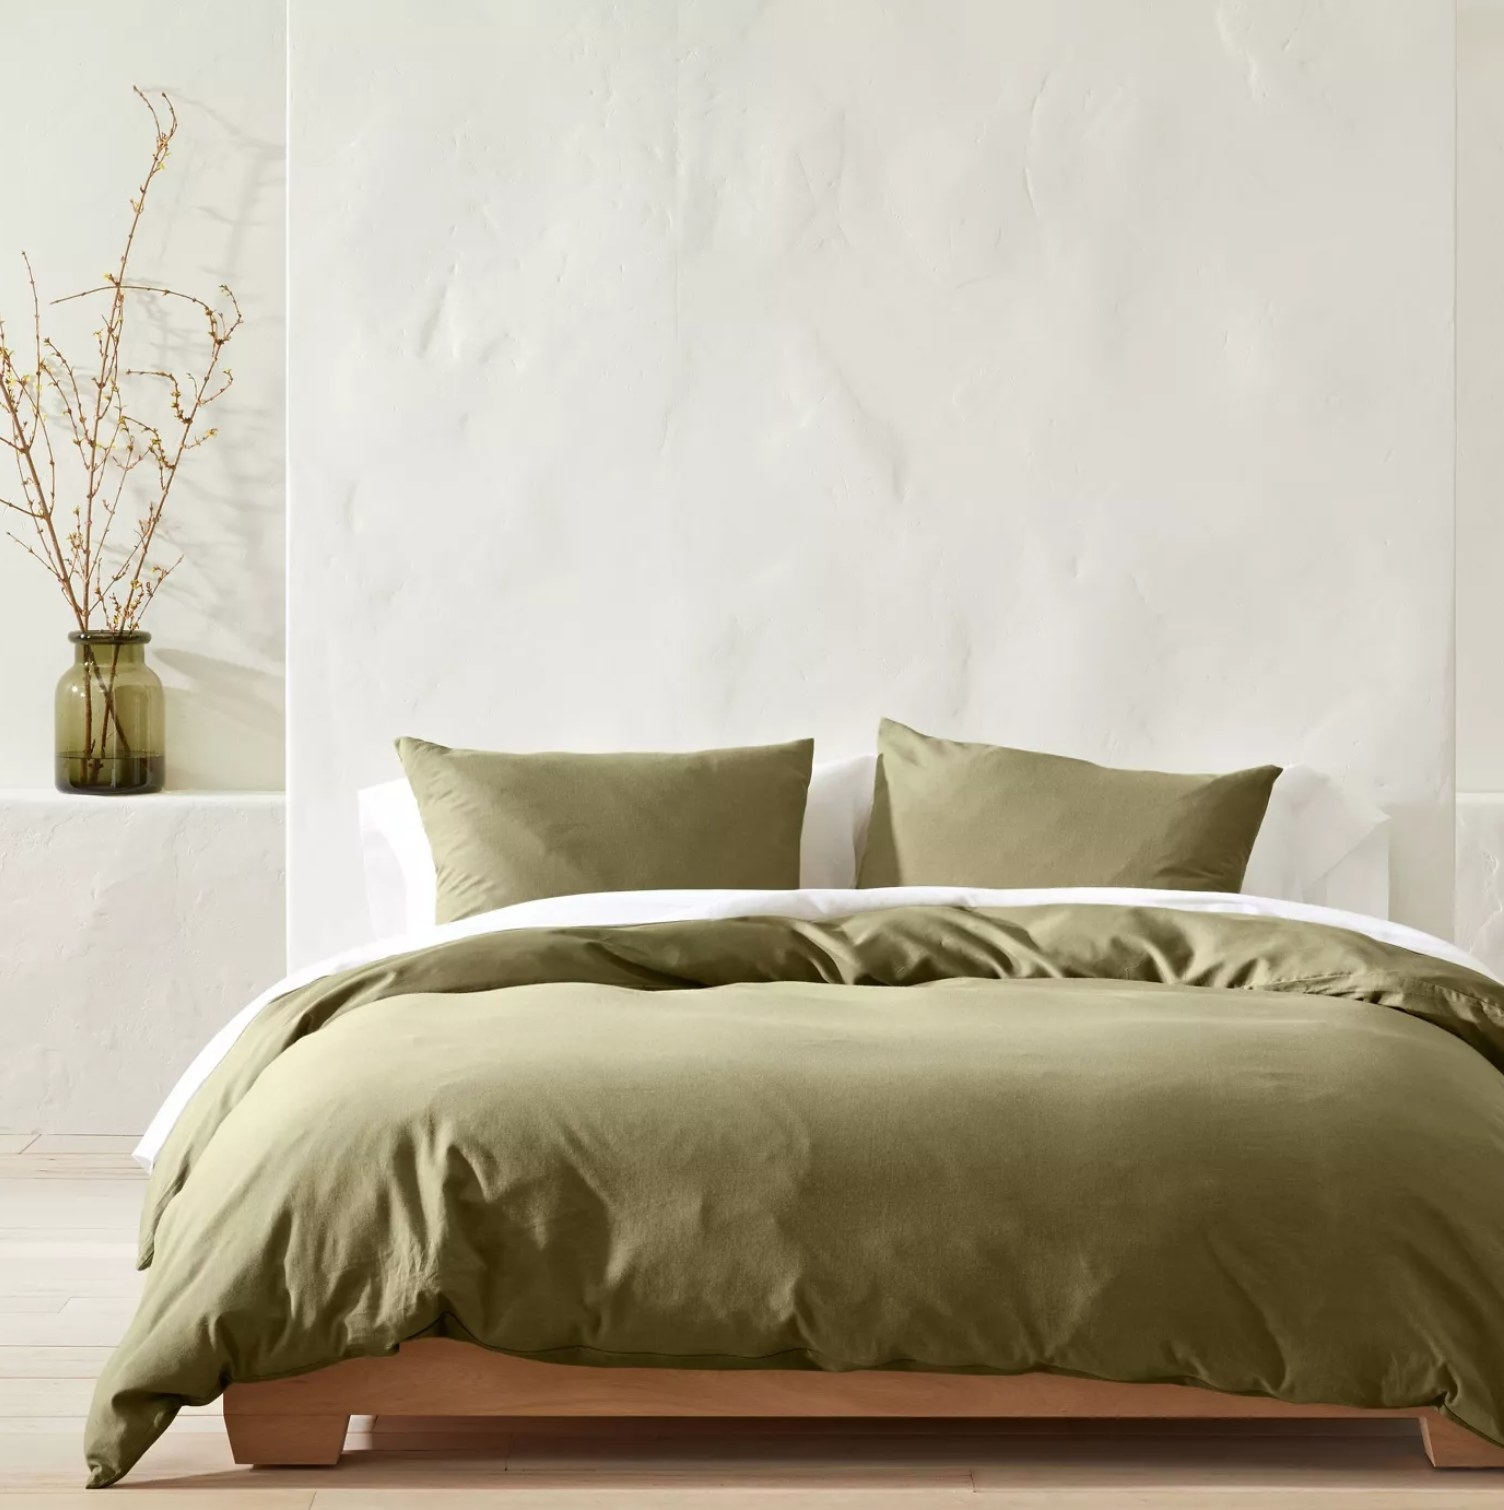 the sage green comforter and sham set on a bed with white stone walls behind it and a green planter next to it